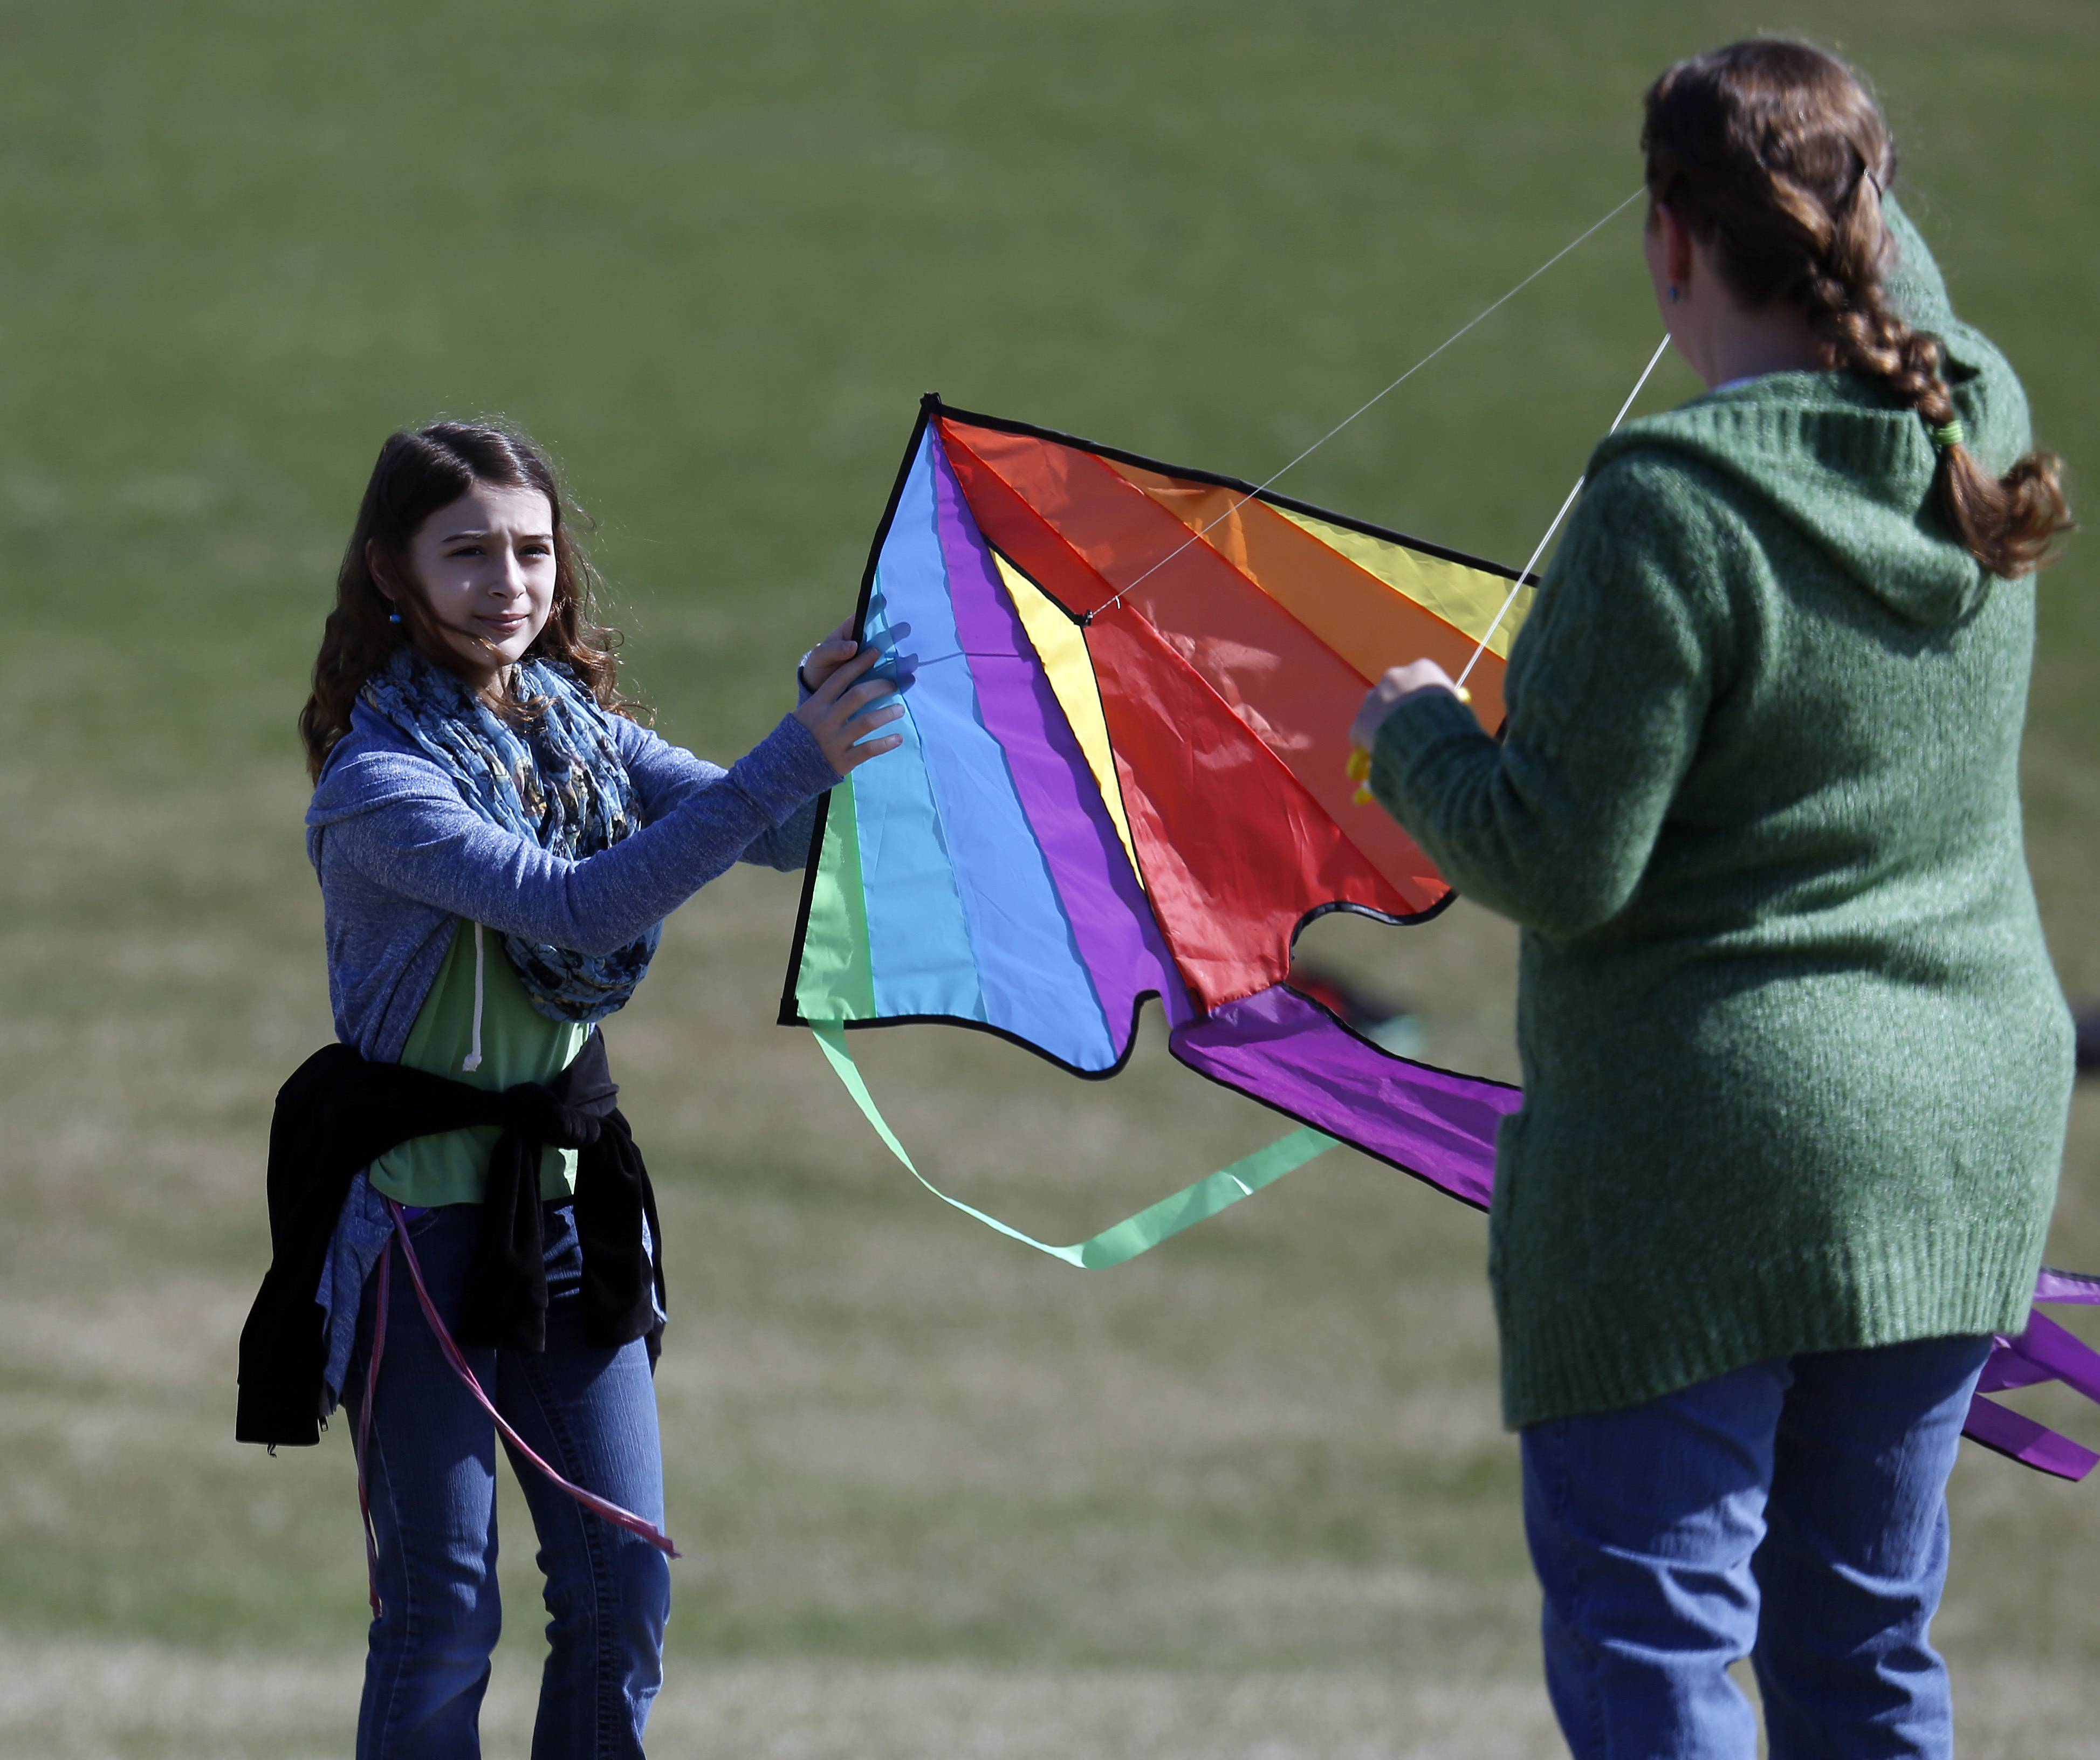 Hazel Kocher, 12, of Crystal Lake, gets some help launching her kite from her mom Jill Brown at Lions Park in Cary Saturday during the Illinois Association of Park Districts' statewide Flying 4 Kids celebration.